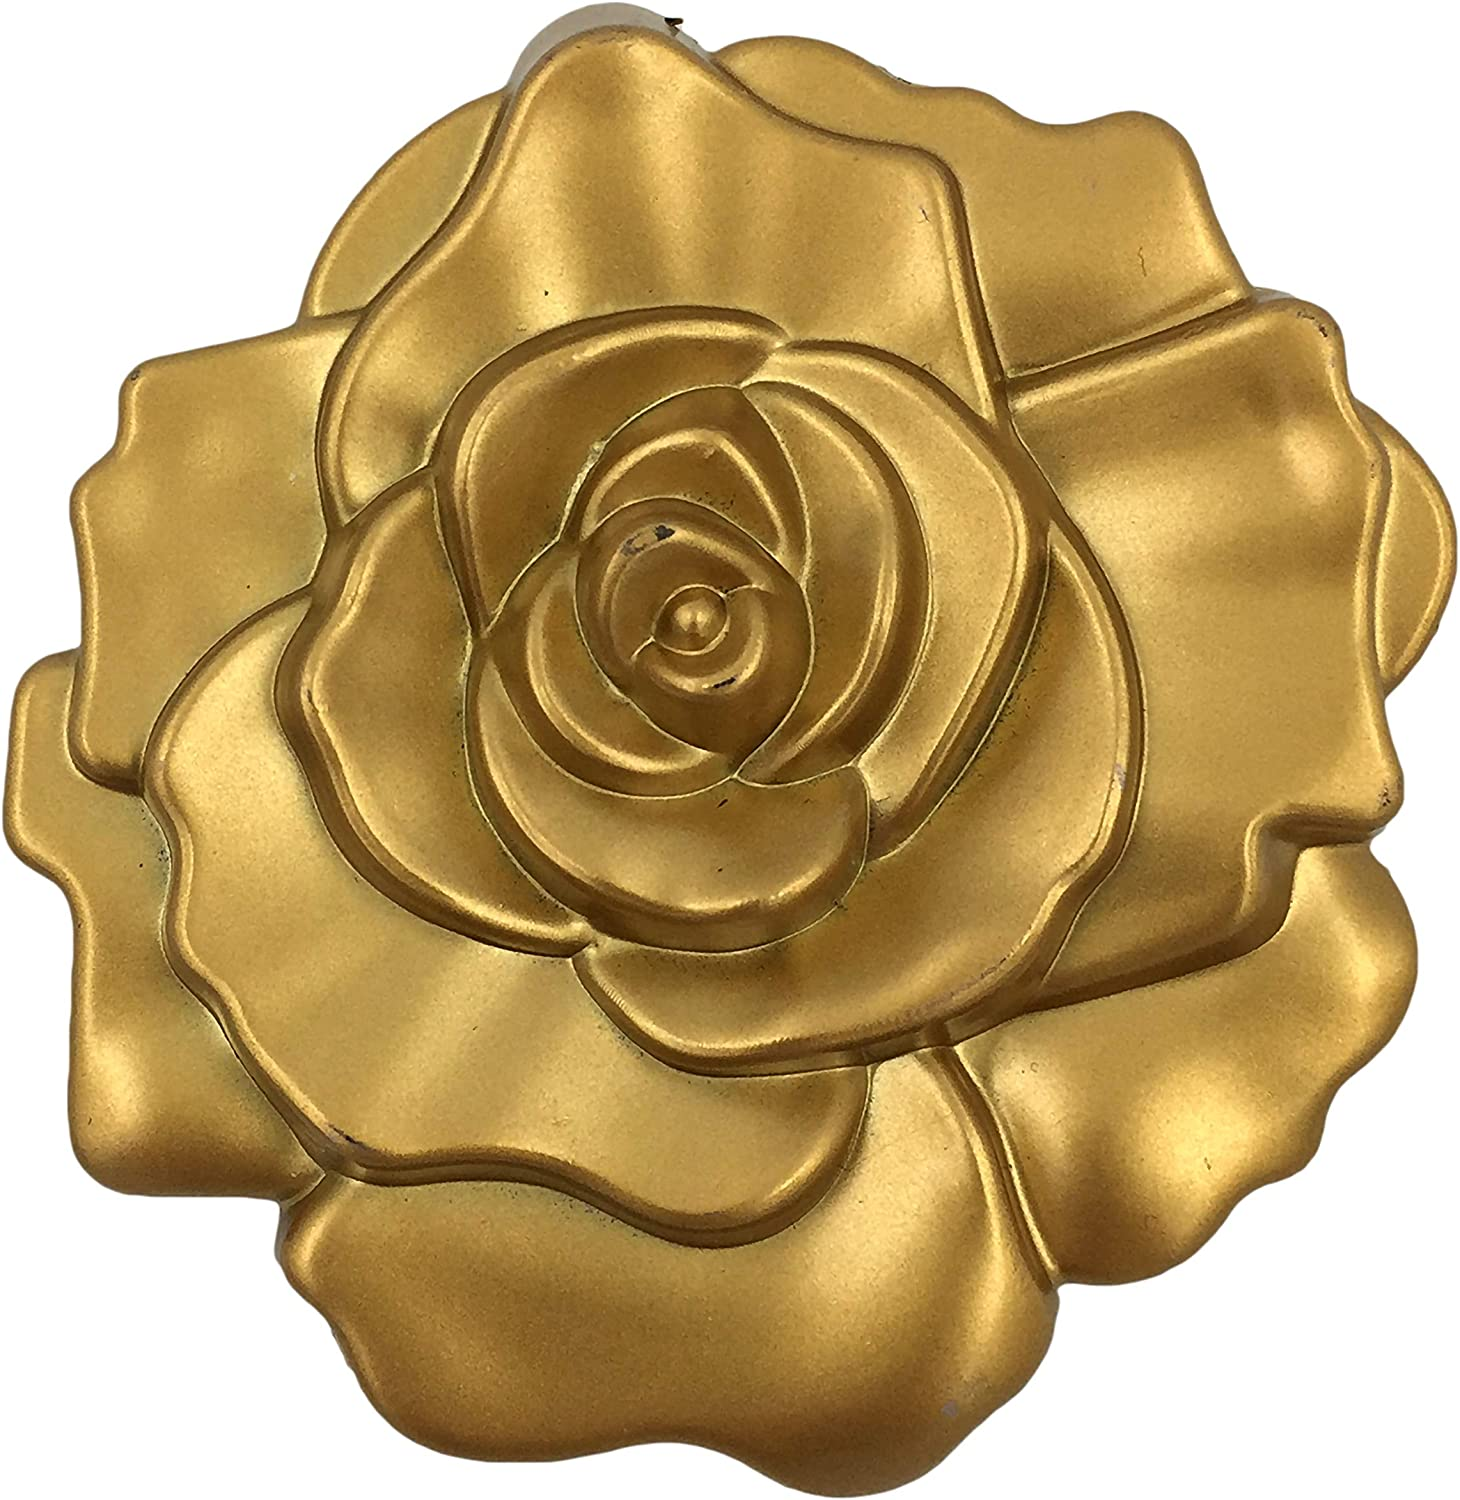 Max 71% OFF Selling FASHIONCRAFT 5969 Ornate Matte Gold Mirror Design Rose Compact